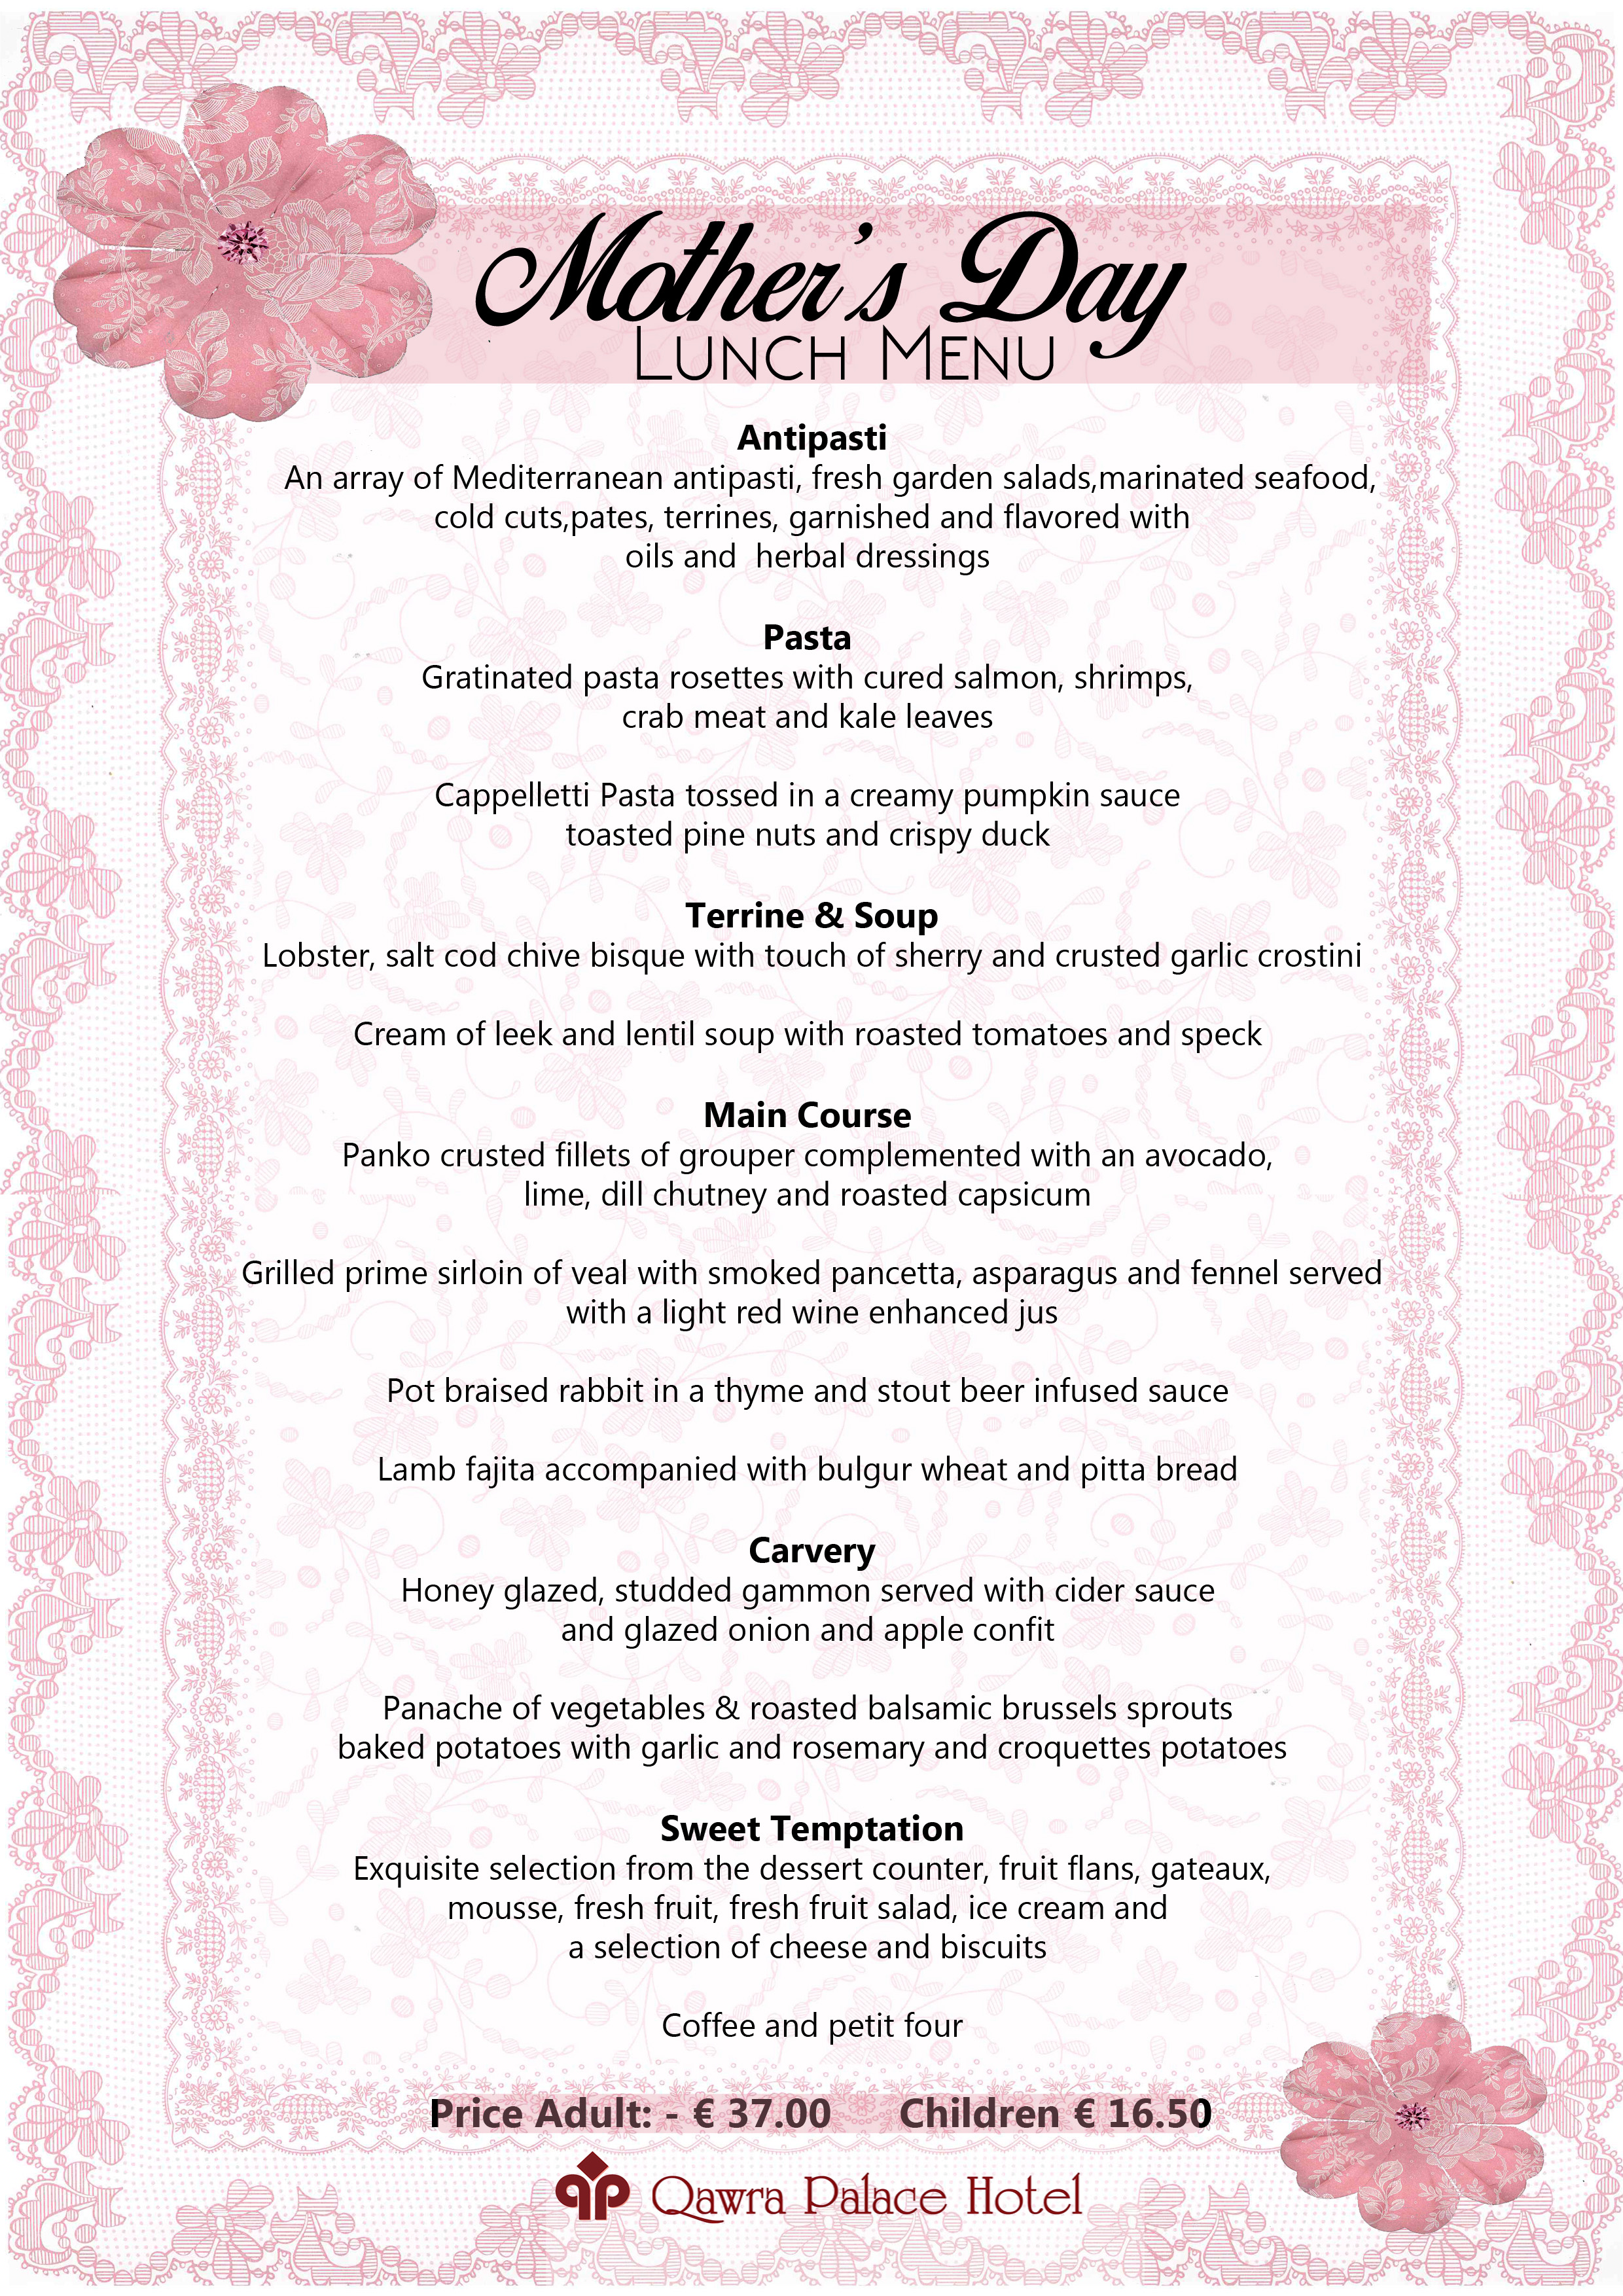 Mother's Day Sunday Lunch Menu